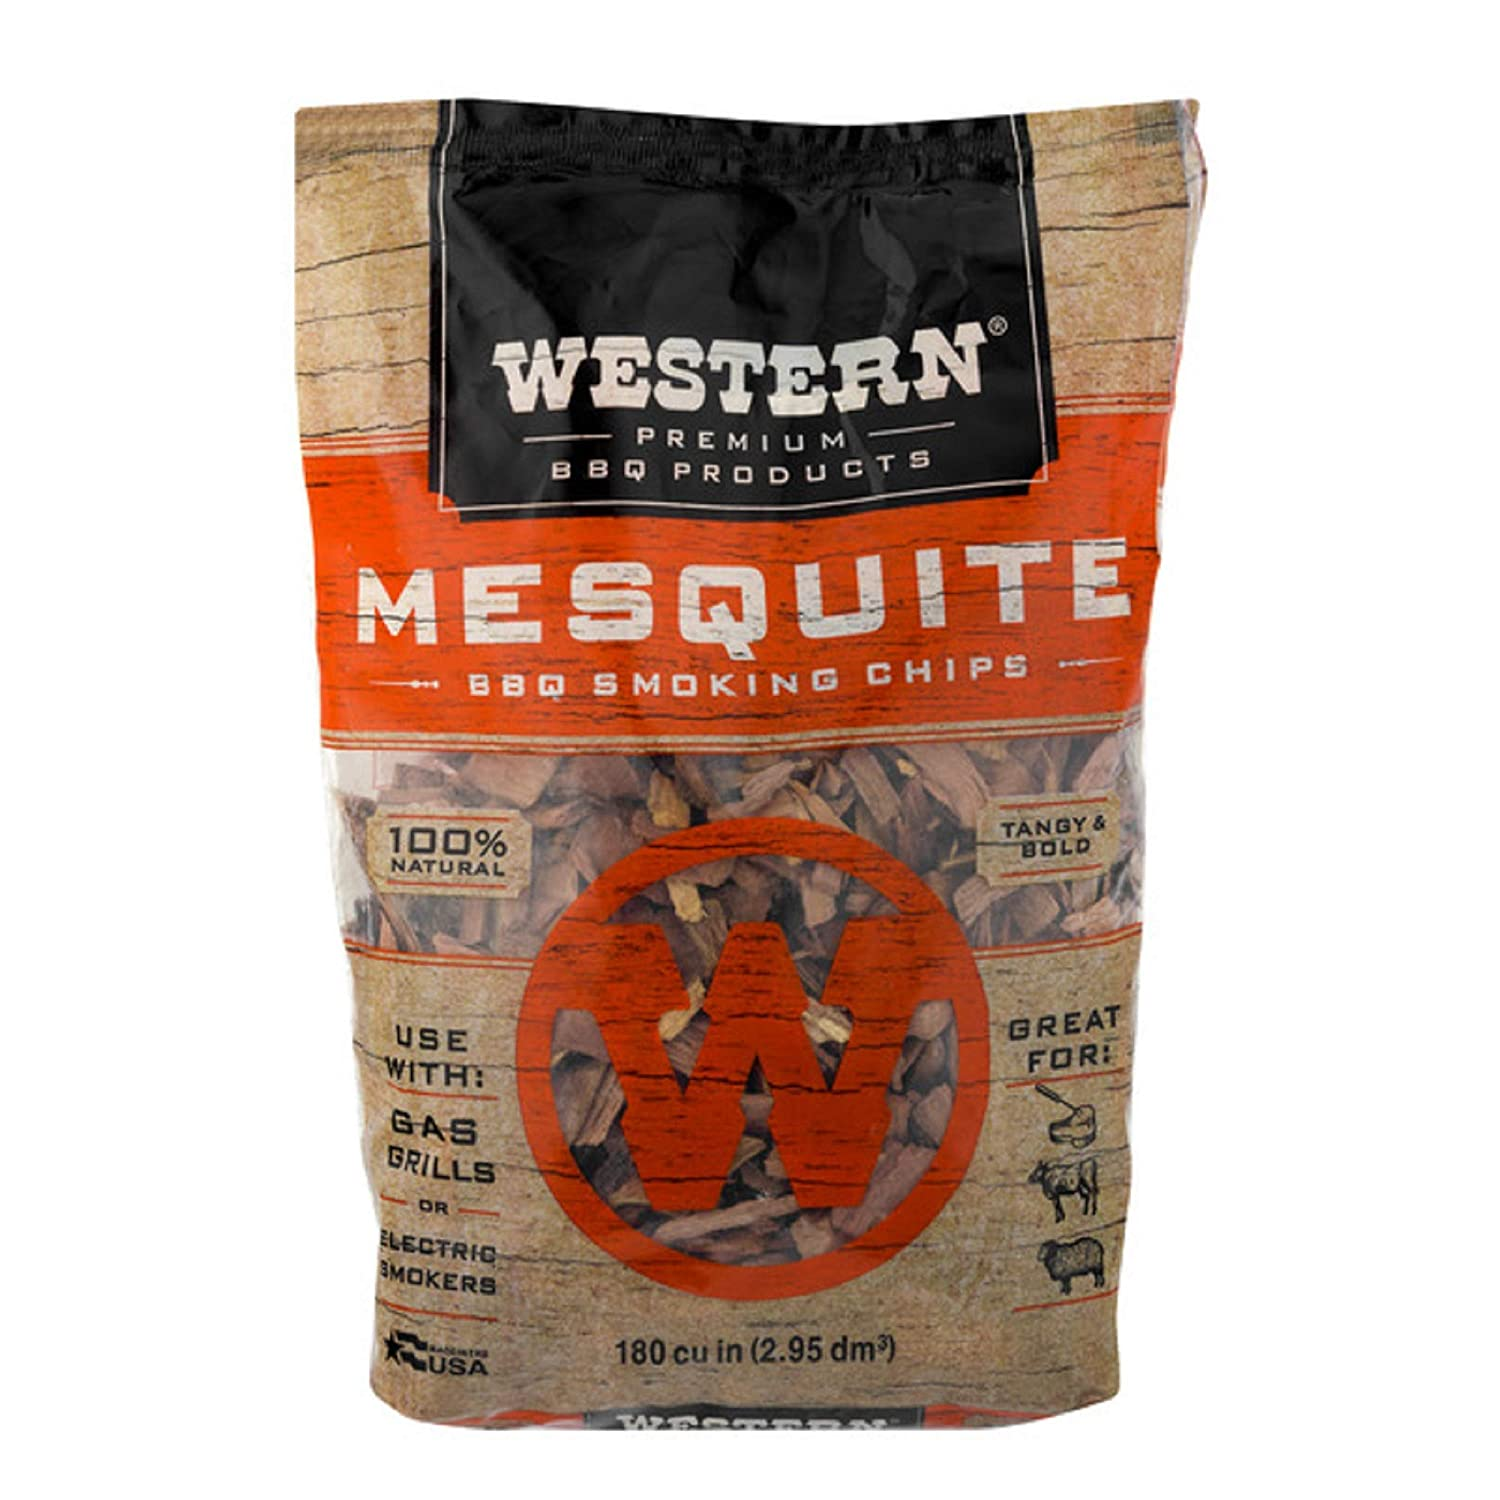 Western Premium BBQ Products Mesquite Smoking Chips, 180 cu inch